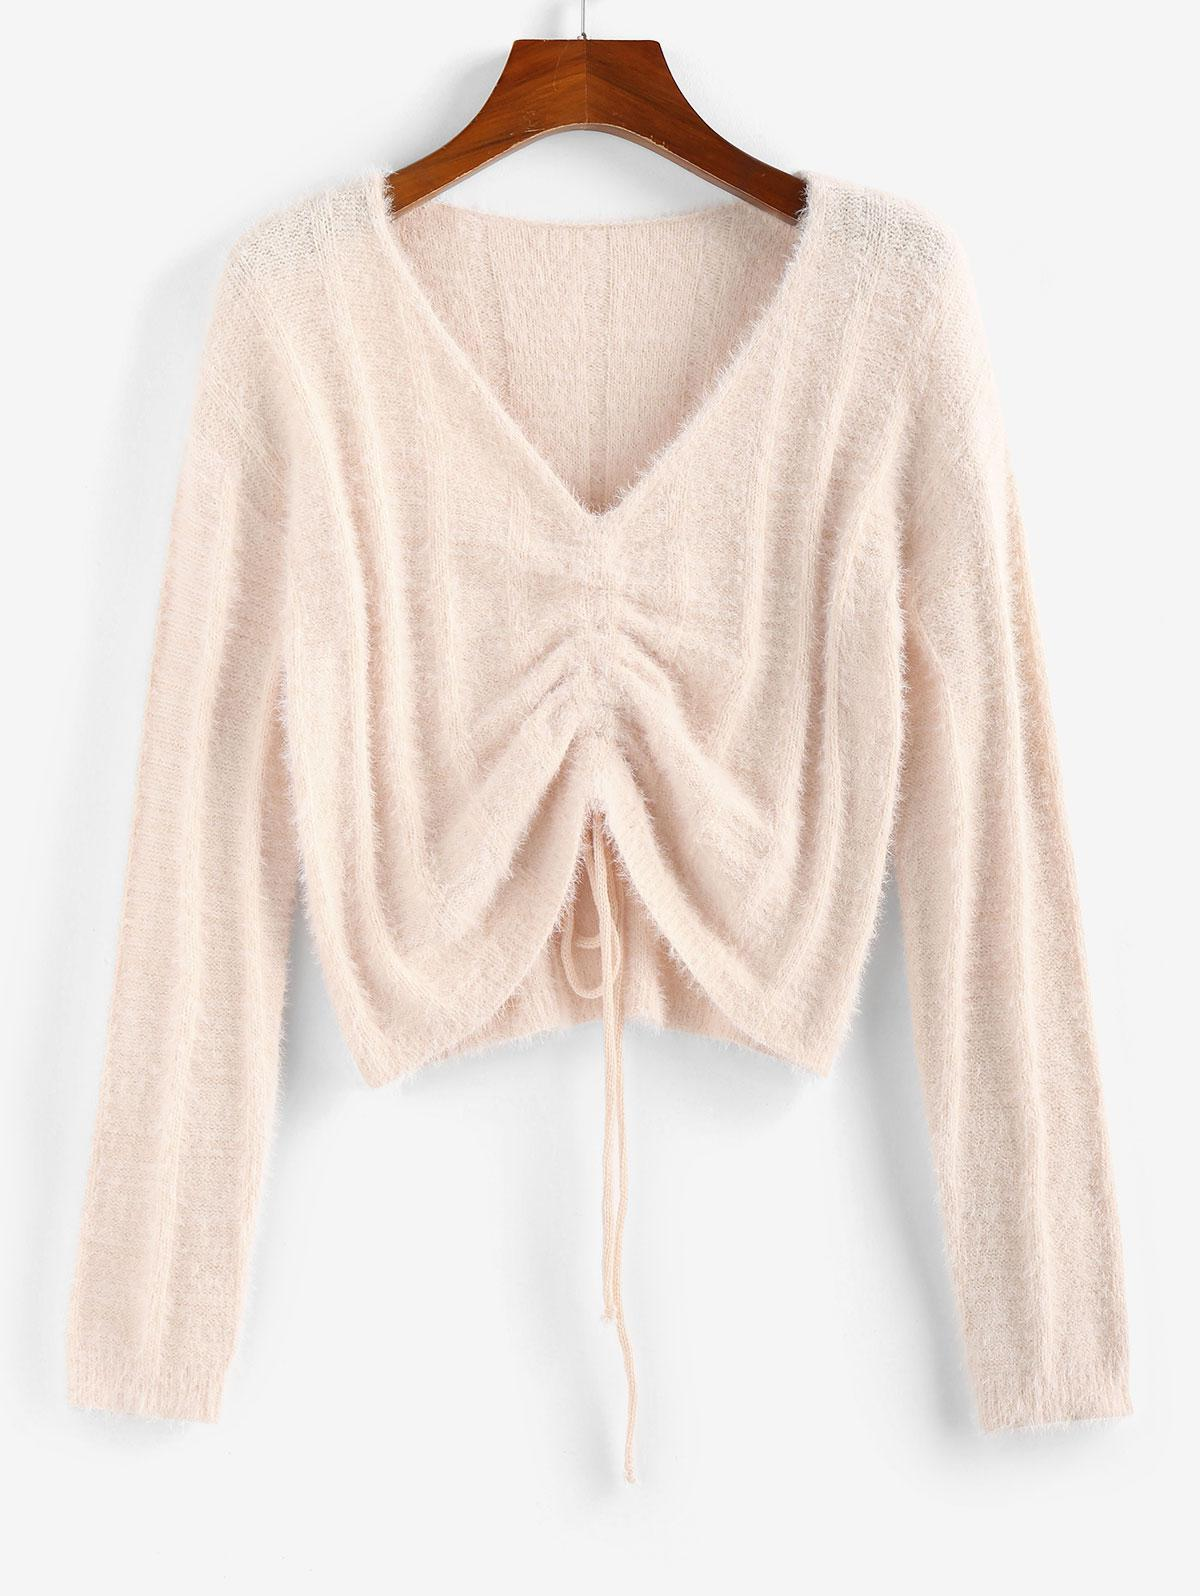 ZAFUL Fuzzy Cinched V Neck Jumper Sweater